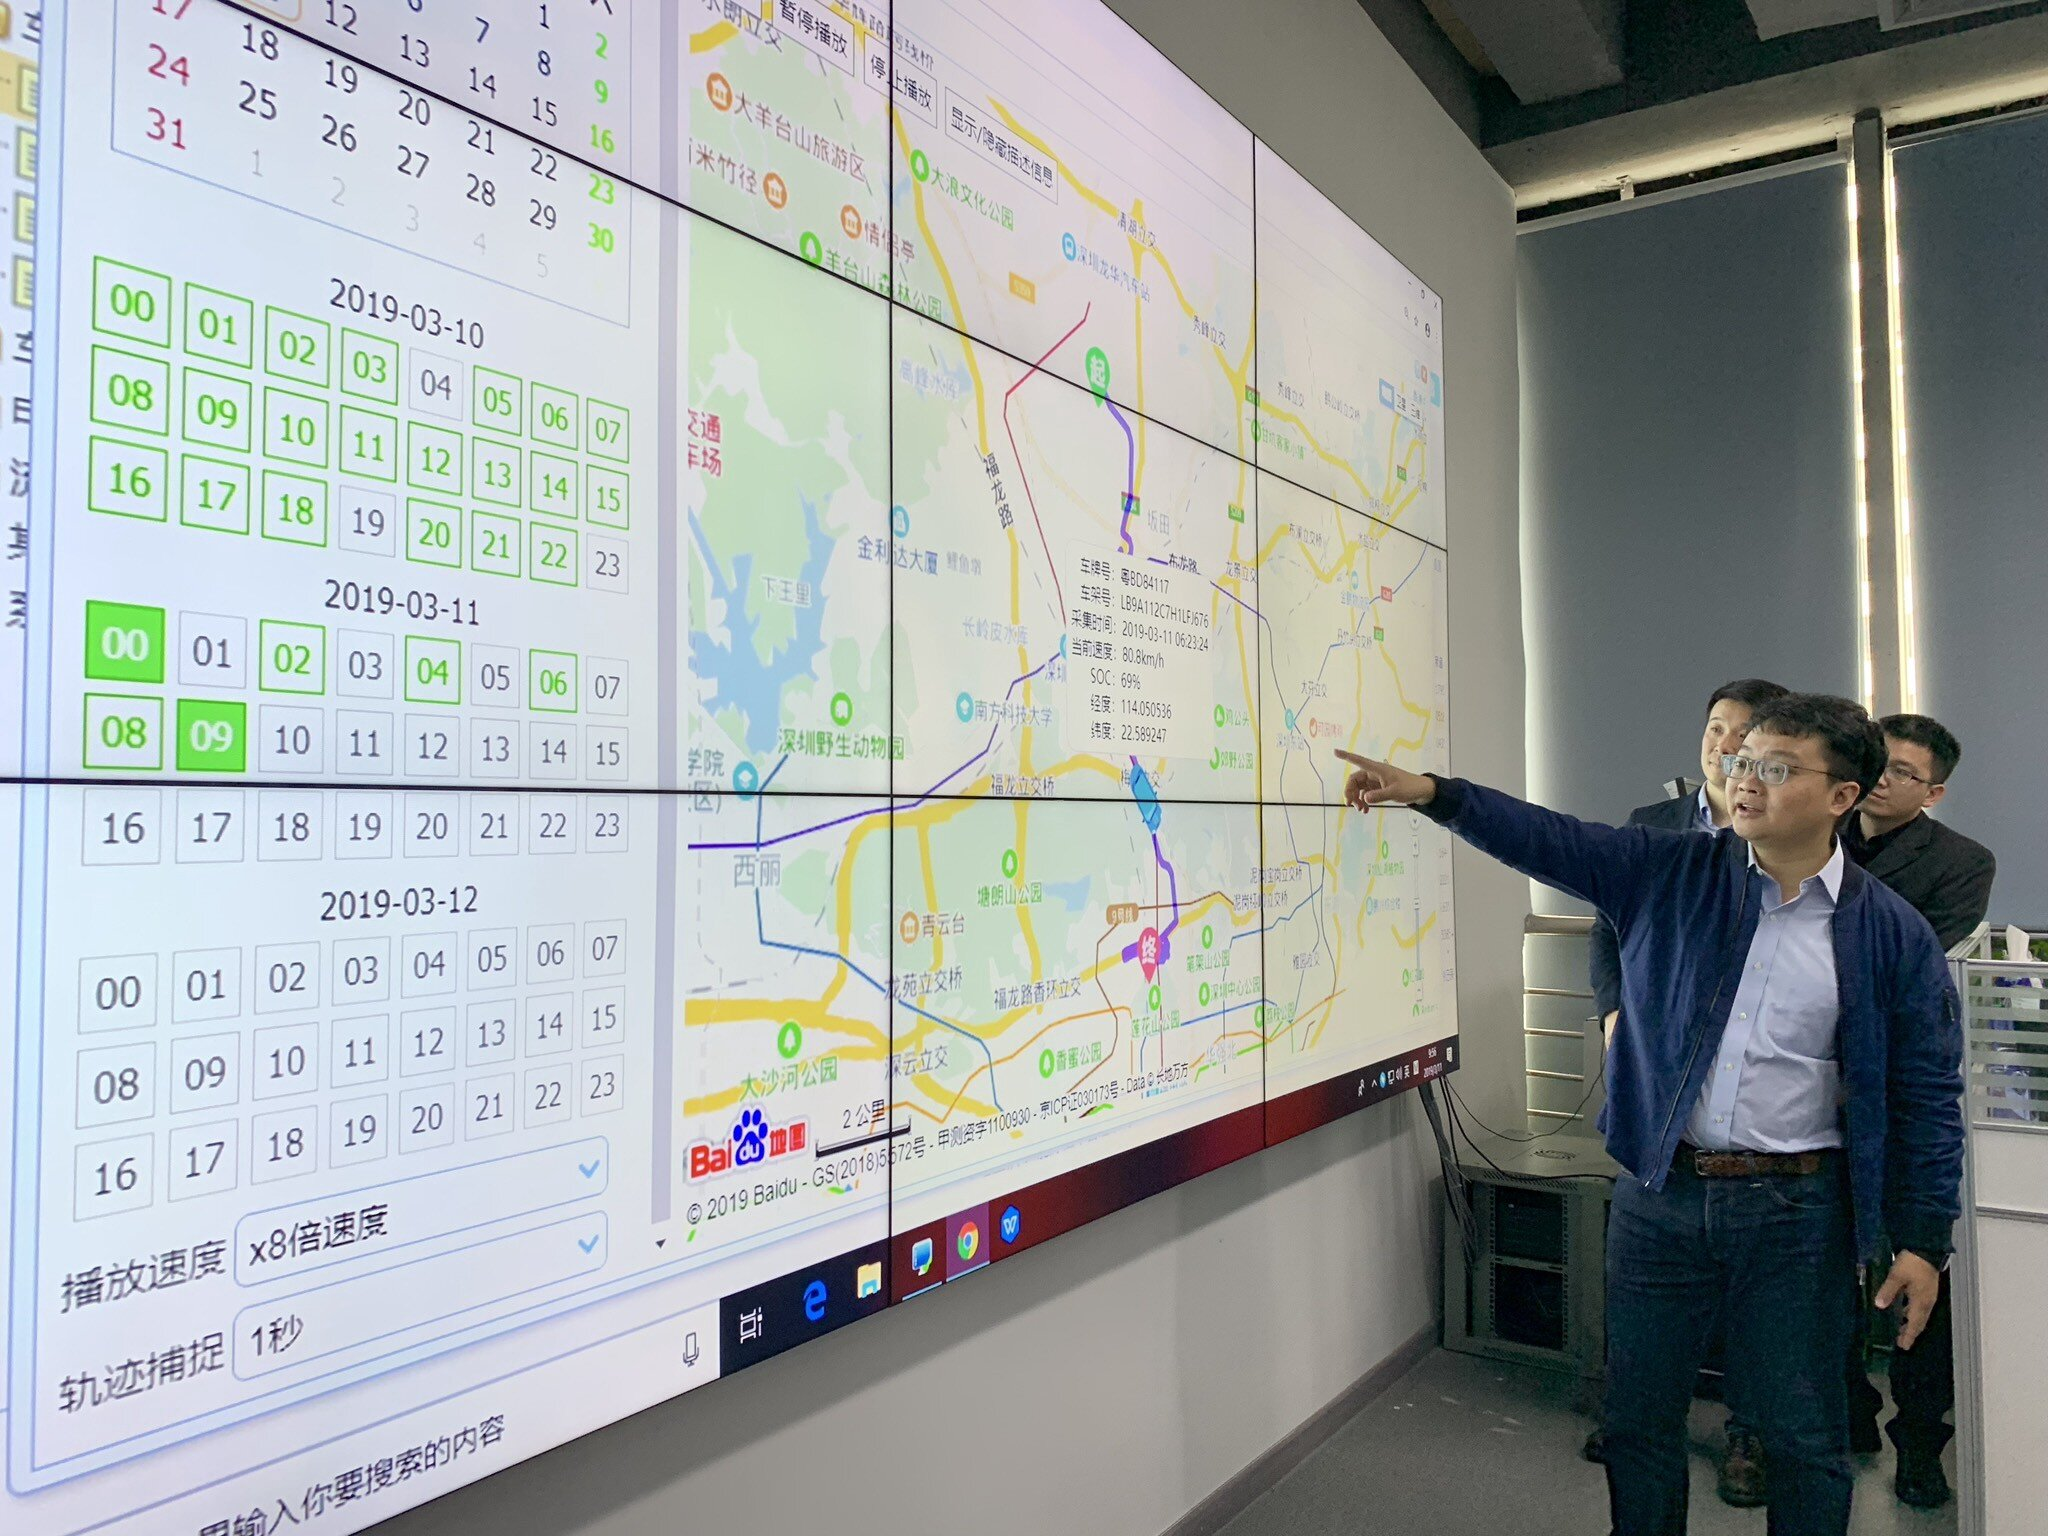 DST's dashboard showing their fleet of 23,000 vehicles, which they track in real-time.